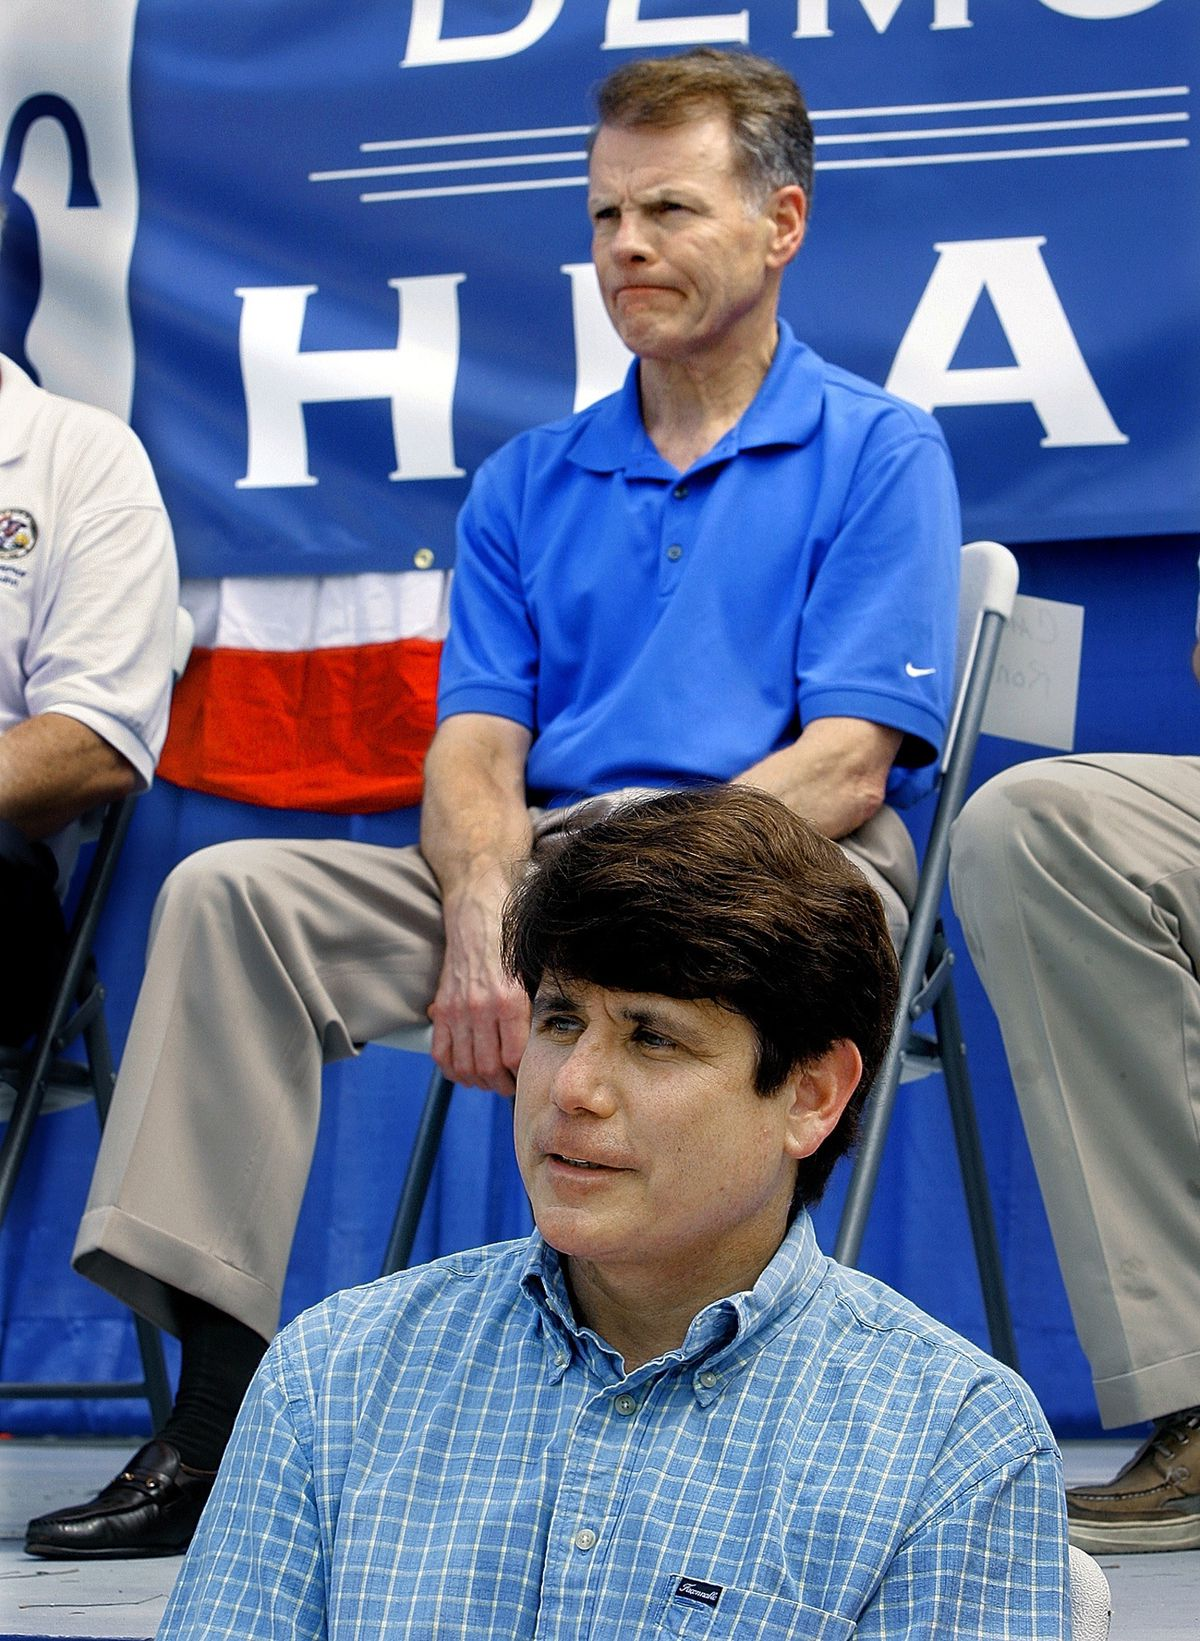 """House Mike Madigan, D-Chicago, top, and then Gov. Rod Blagojevich, bottom, attend the """"Governor's Day"""" rally at the Illinois State Fair in Springfield in 2007."""